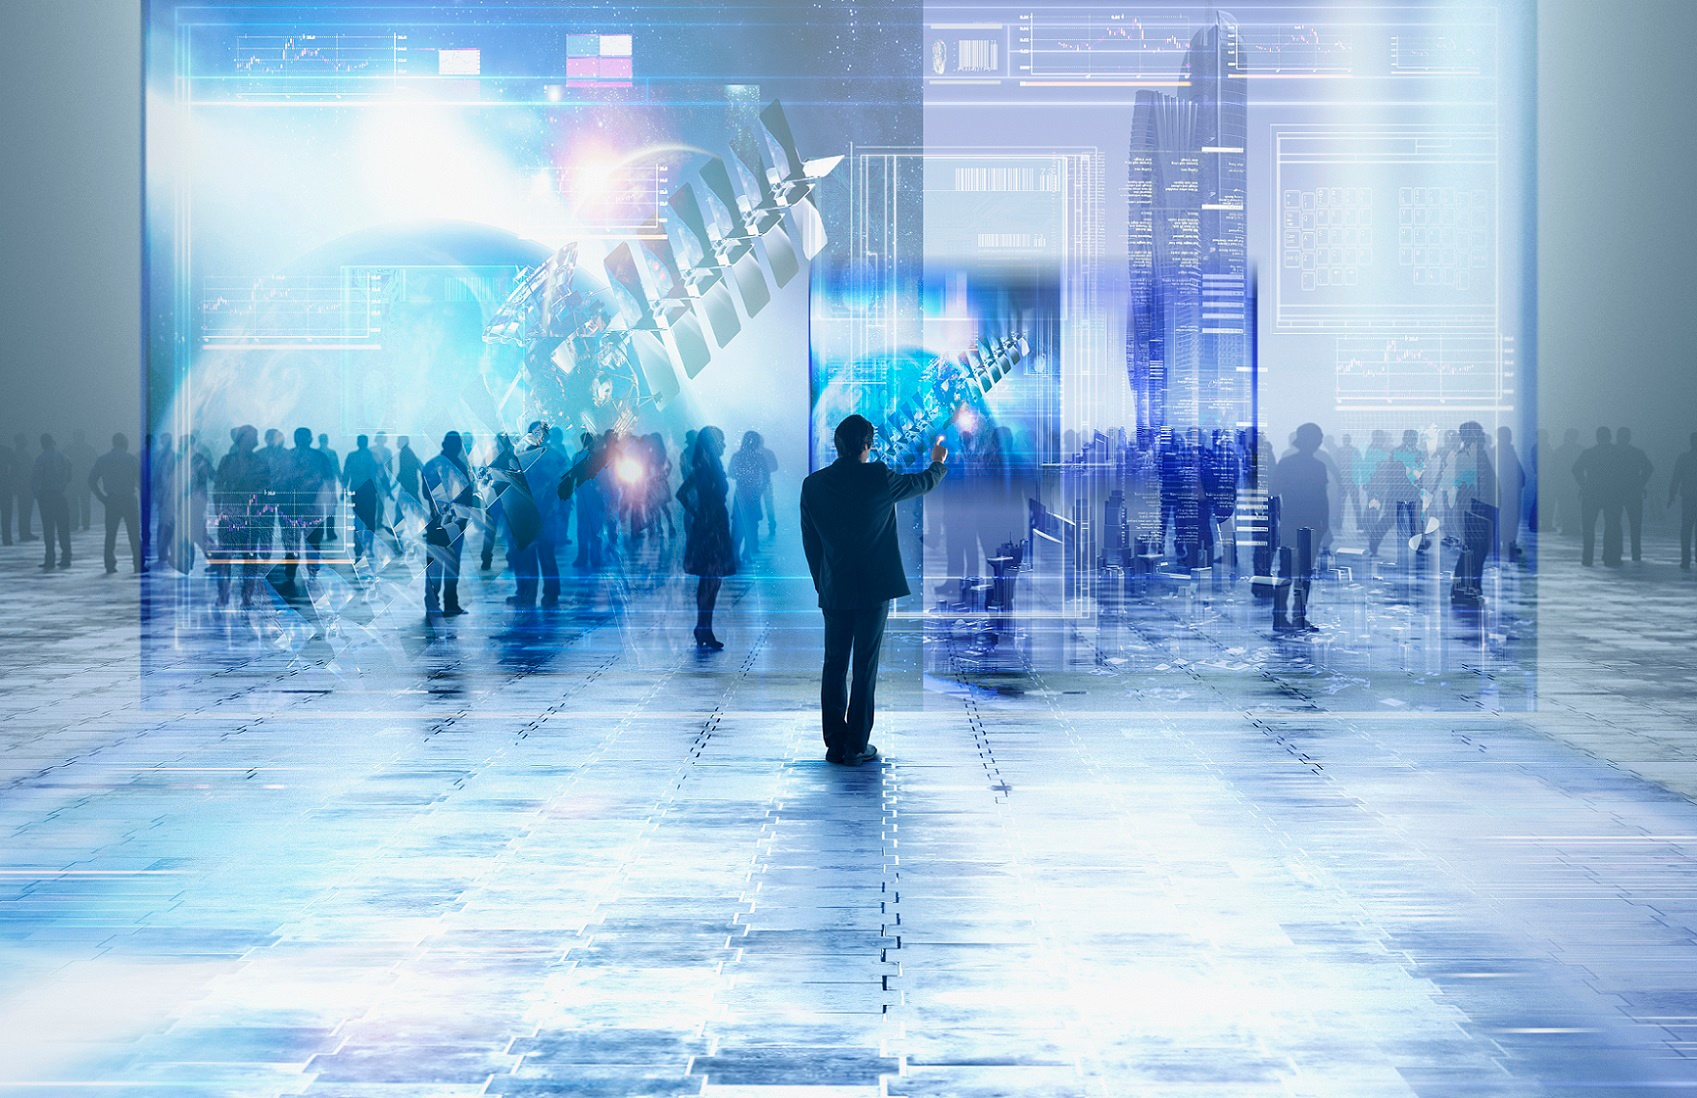 event technology and brand experiences